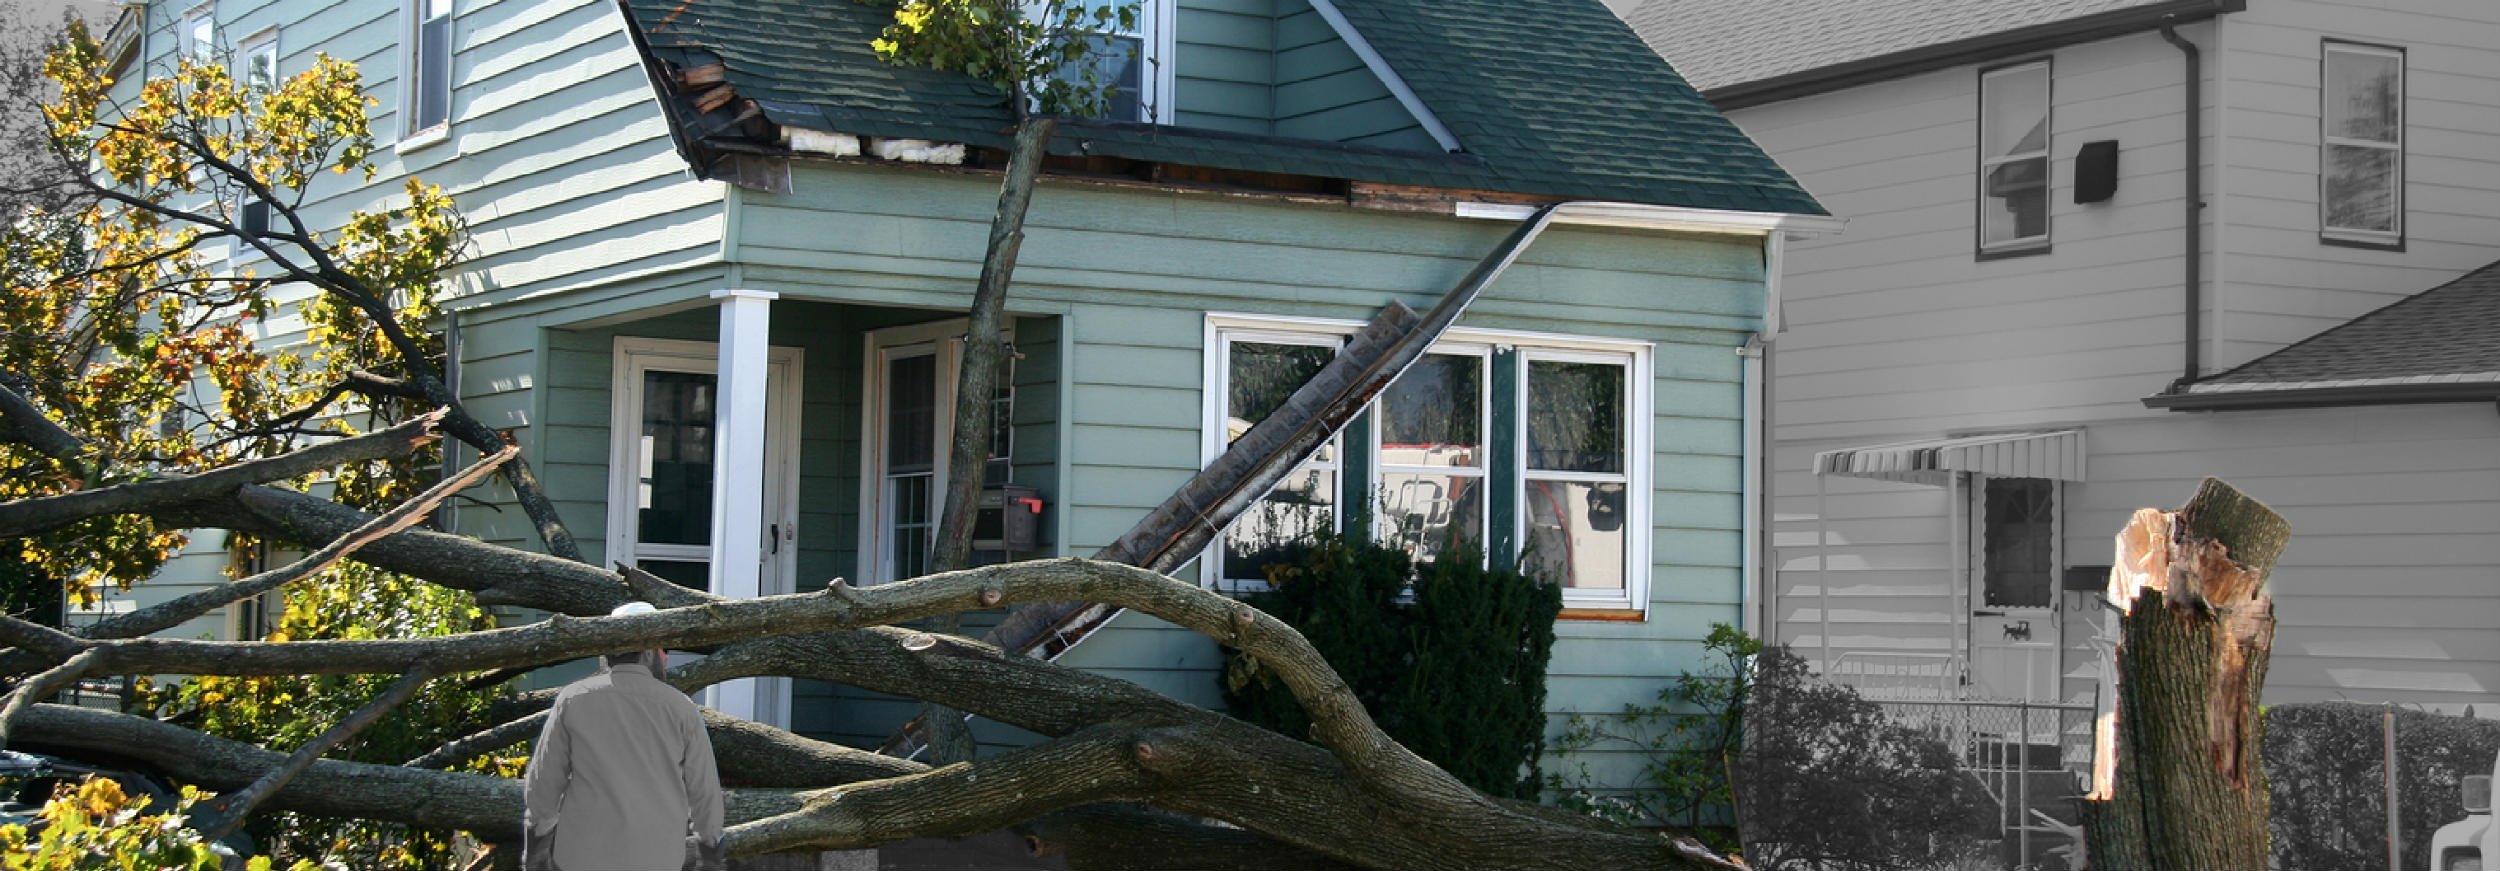 What should you do if you suspect storm damage? - Pic 1